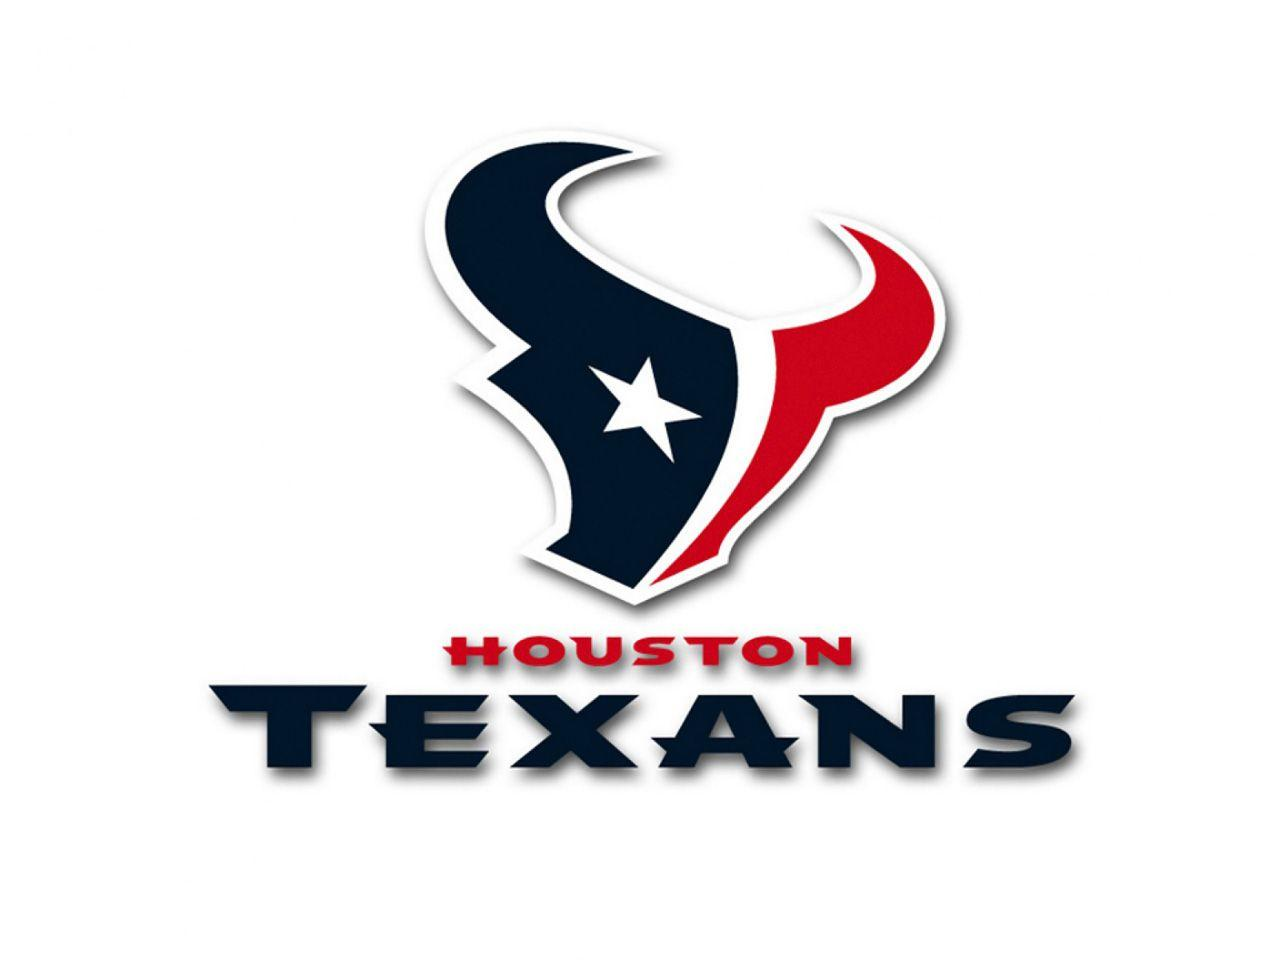 houston texans wallpapers Image, Graphics, Comments and Pictures